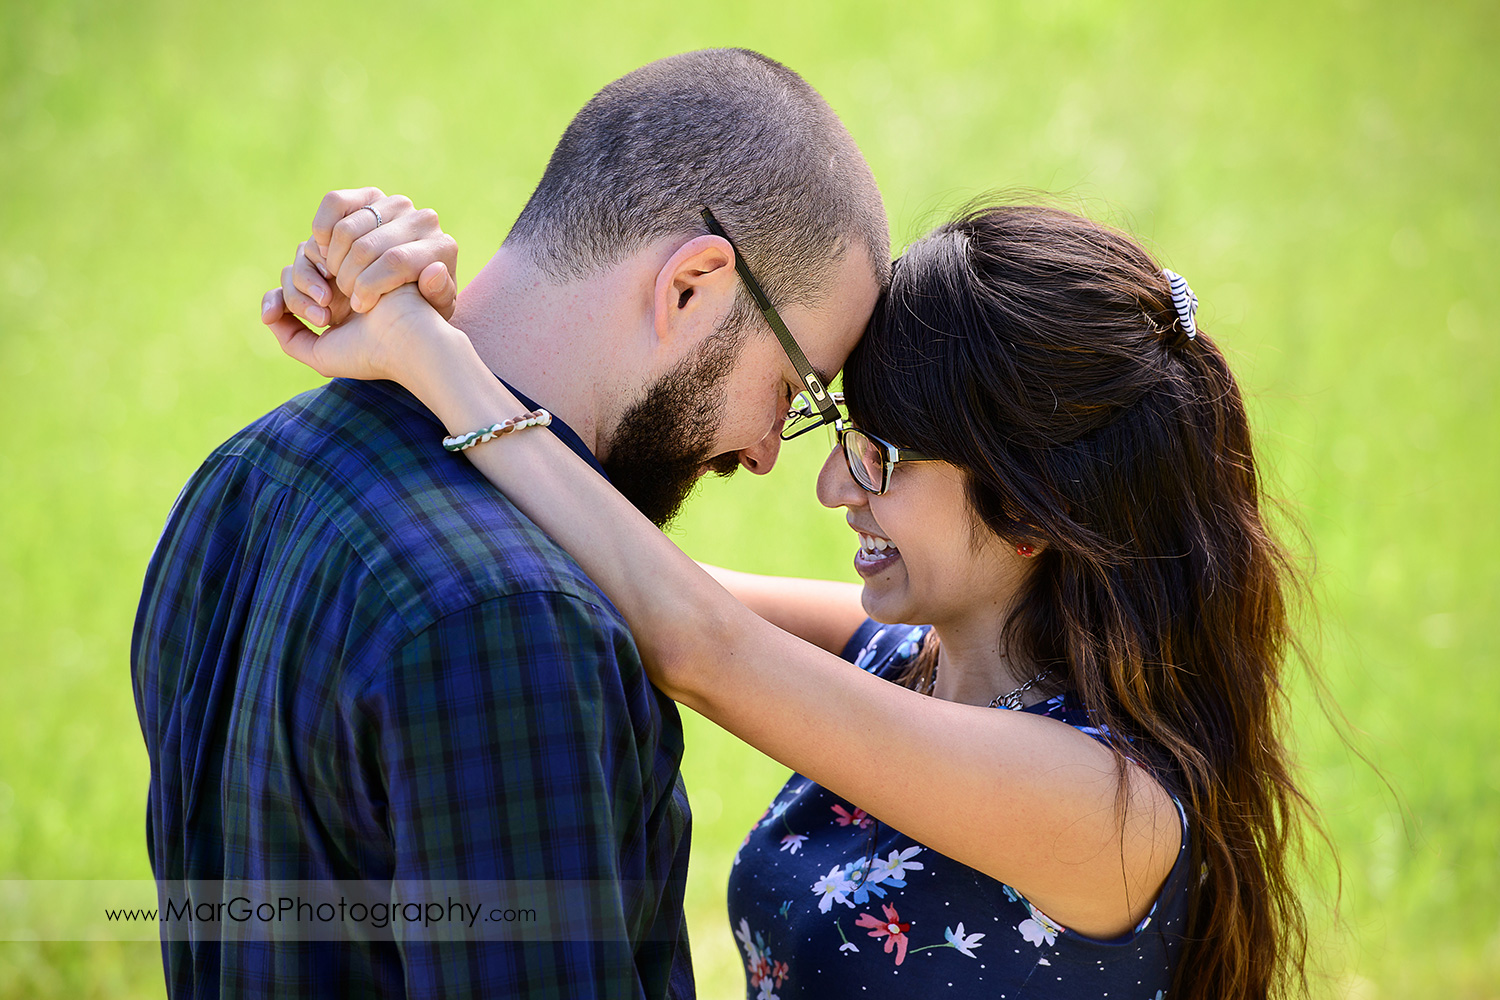 close-up portrait of man in blue shirt and woman in blue dress touching foreheads on the green grass backround during engagement session at Sunol Regional Wilderness